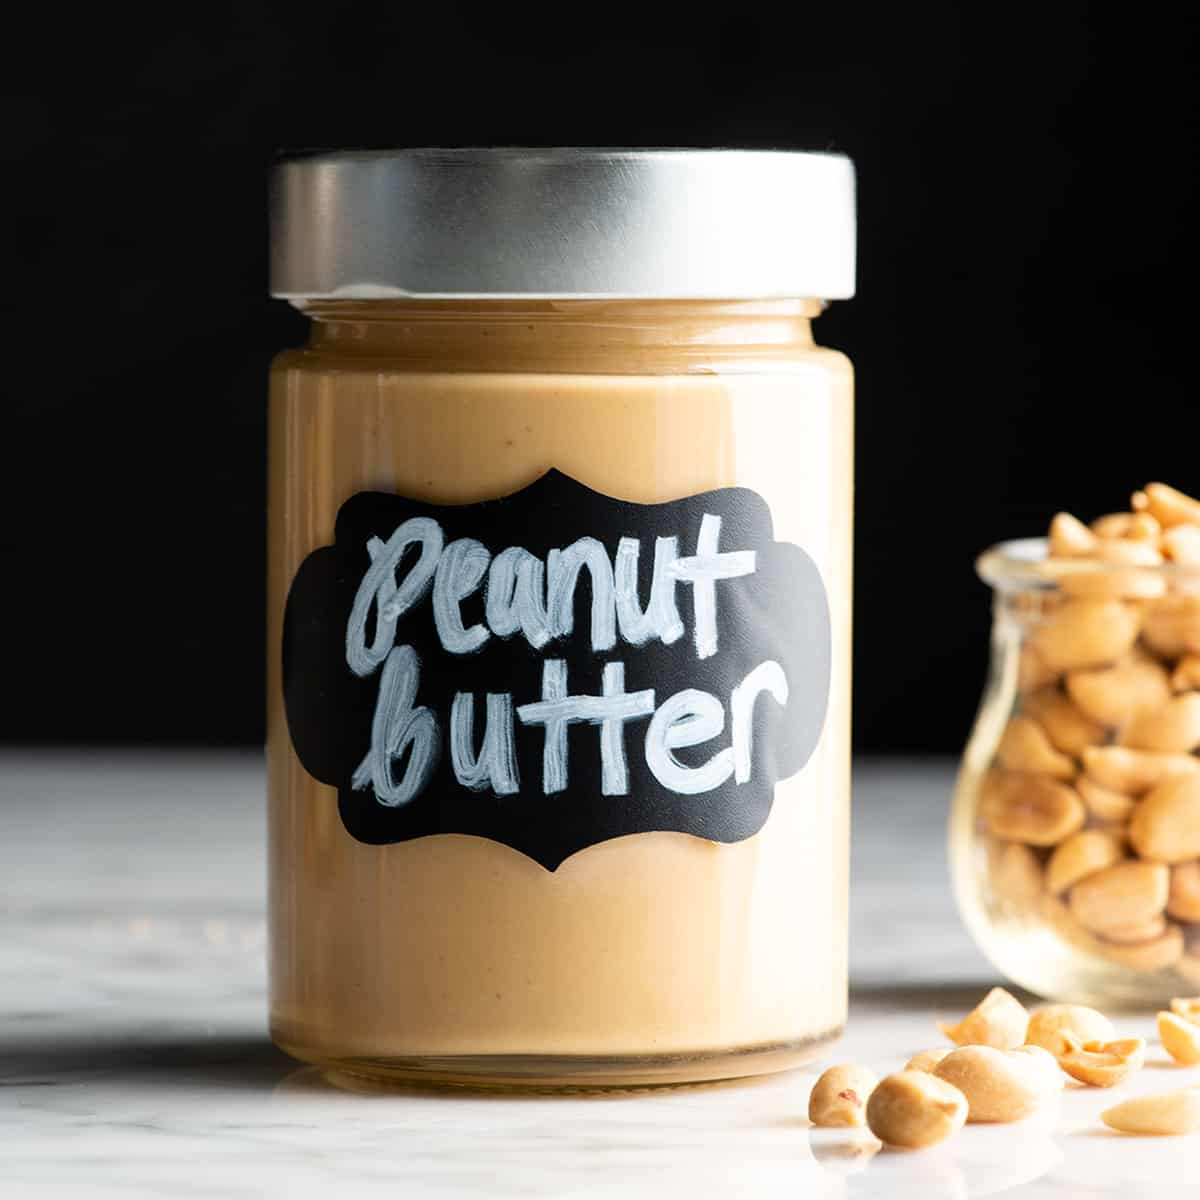 front view of a jar of homemade peanut butter